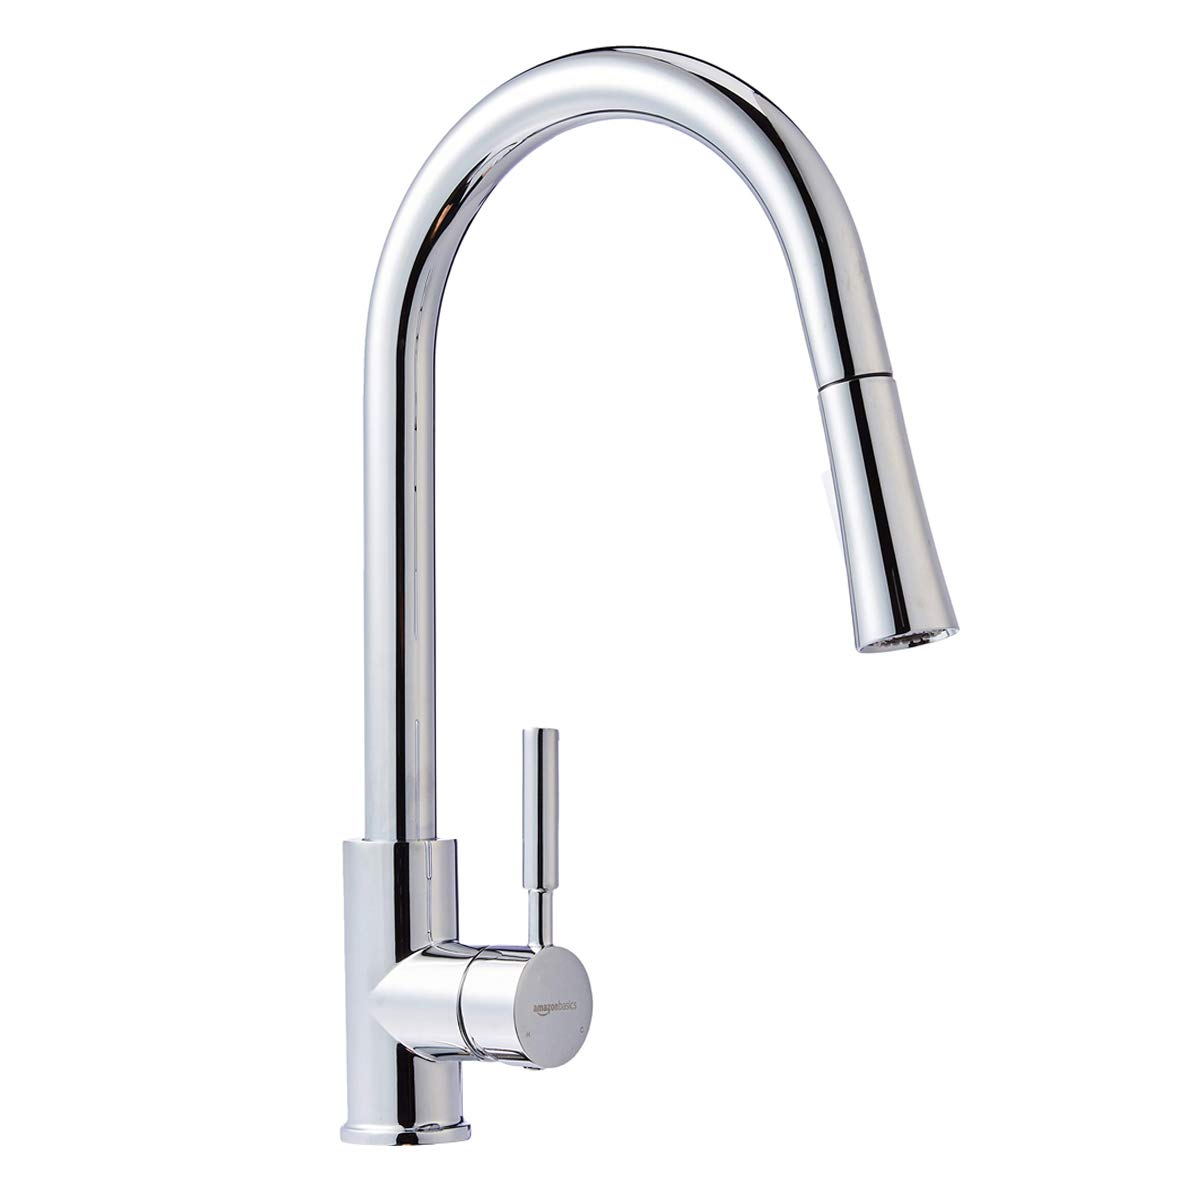 AmazonBasics Modern Single-Handled Kitchen Pull-Down Sprayer Faucet - Polished Chrome